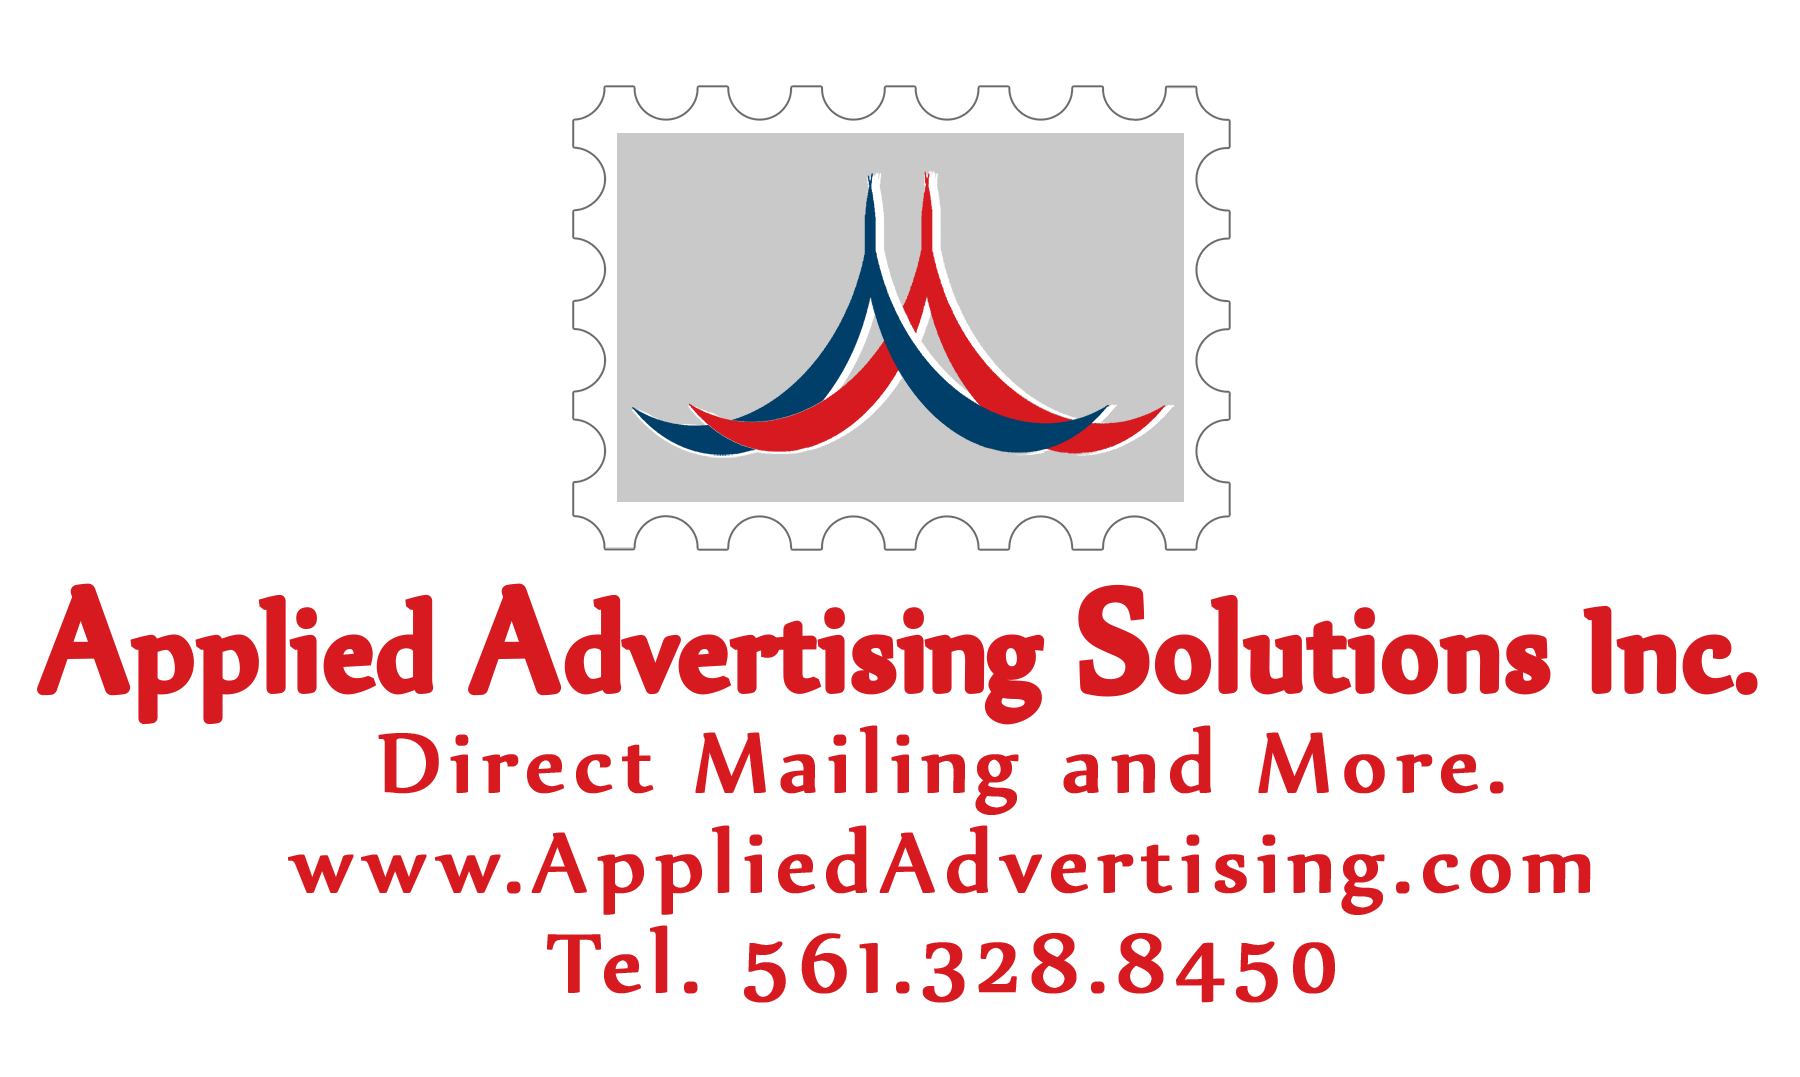 Applied Advertising Solutions